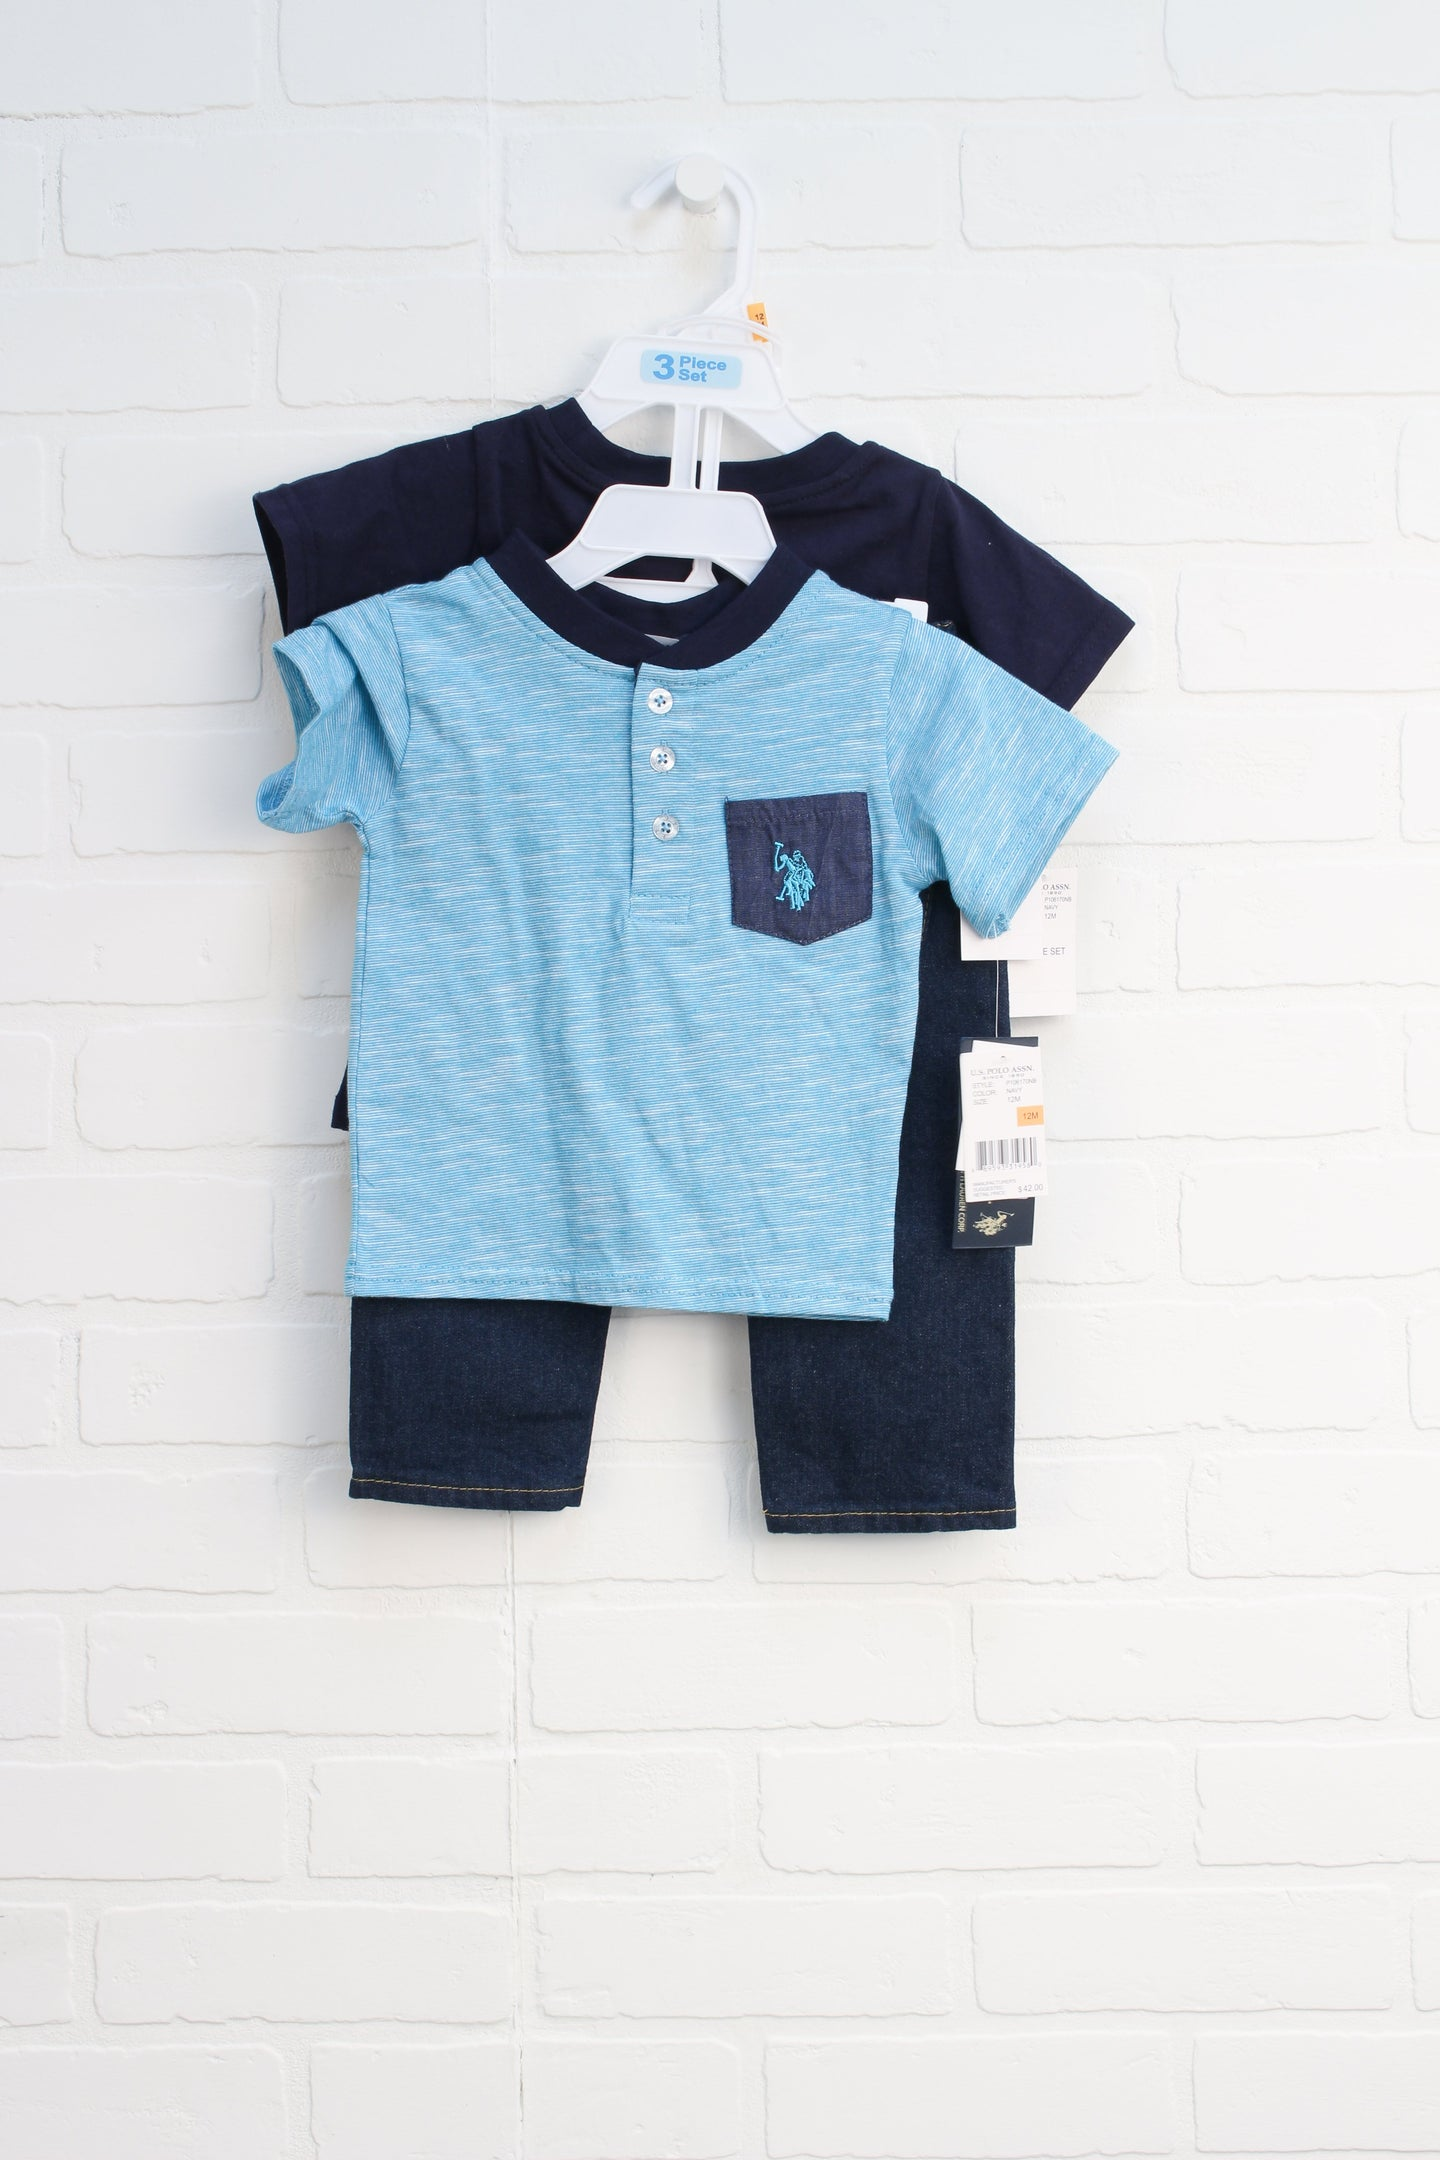 NWT OUTFIT: Light Blue + Navy Set (Size 12M) 3 Pieces